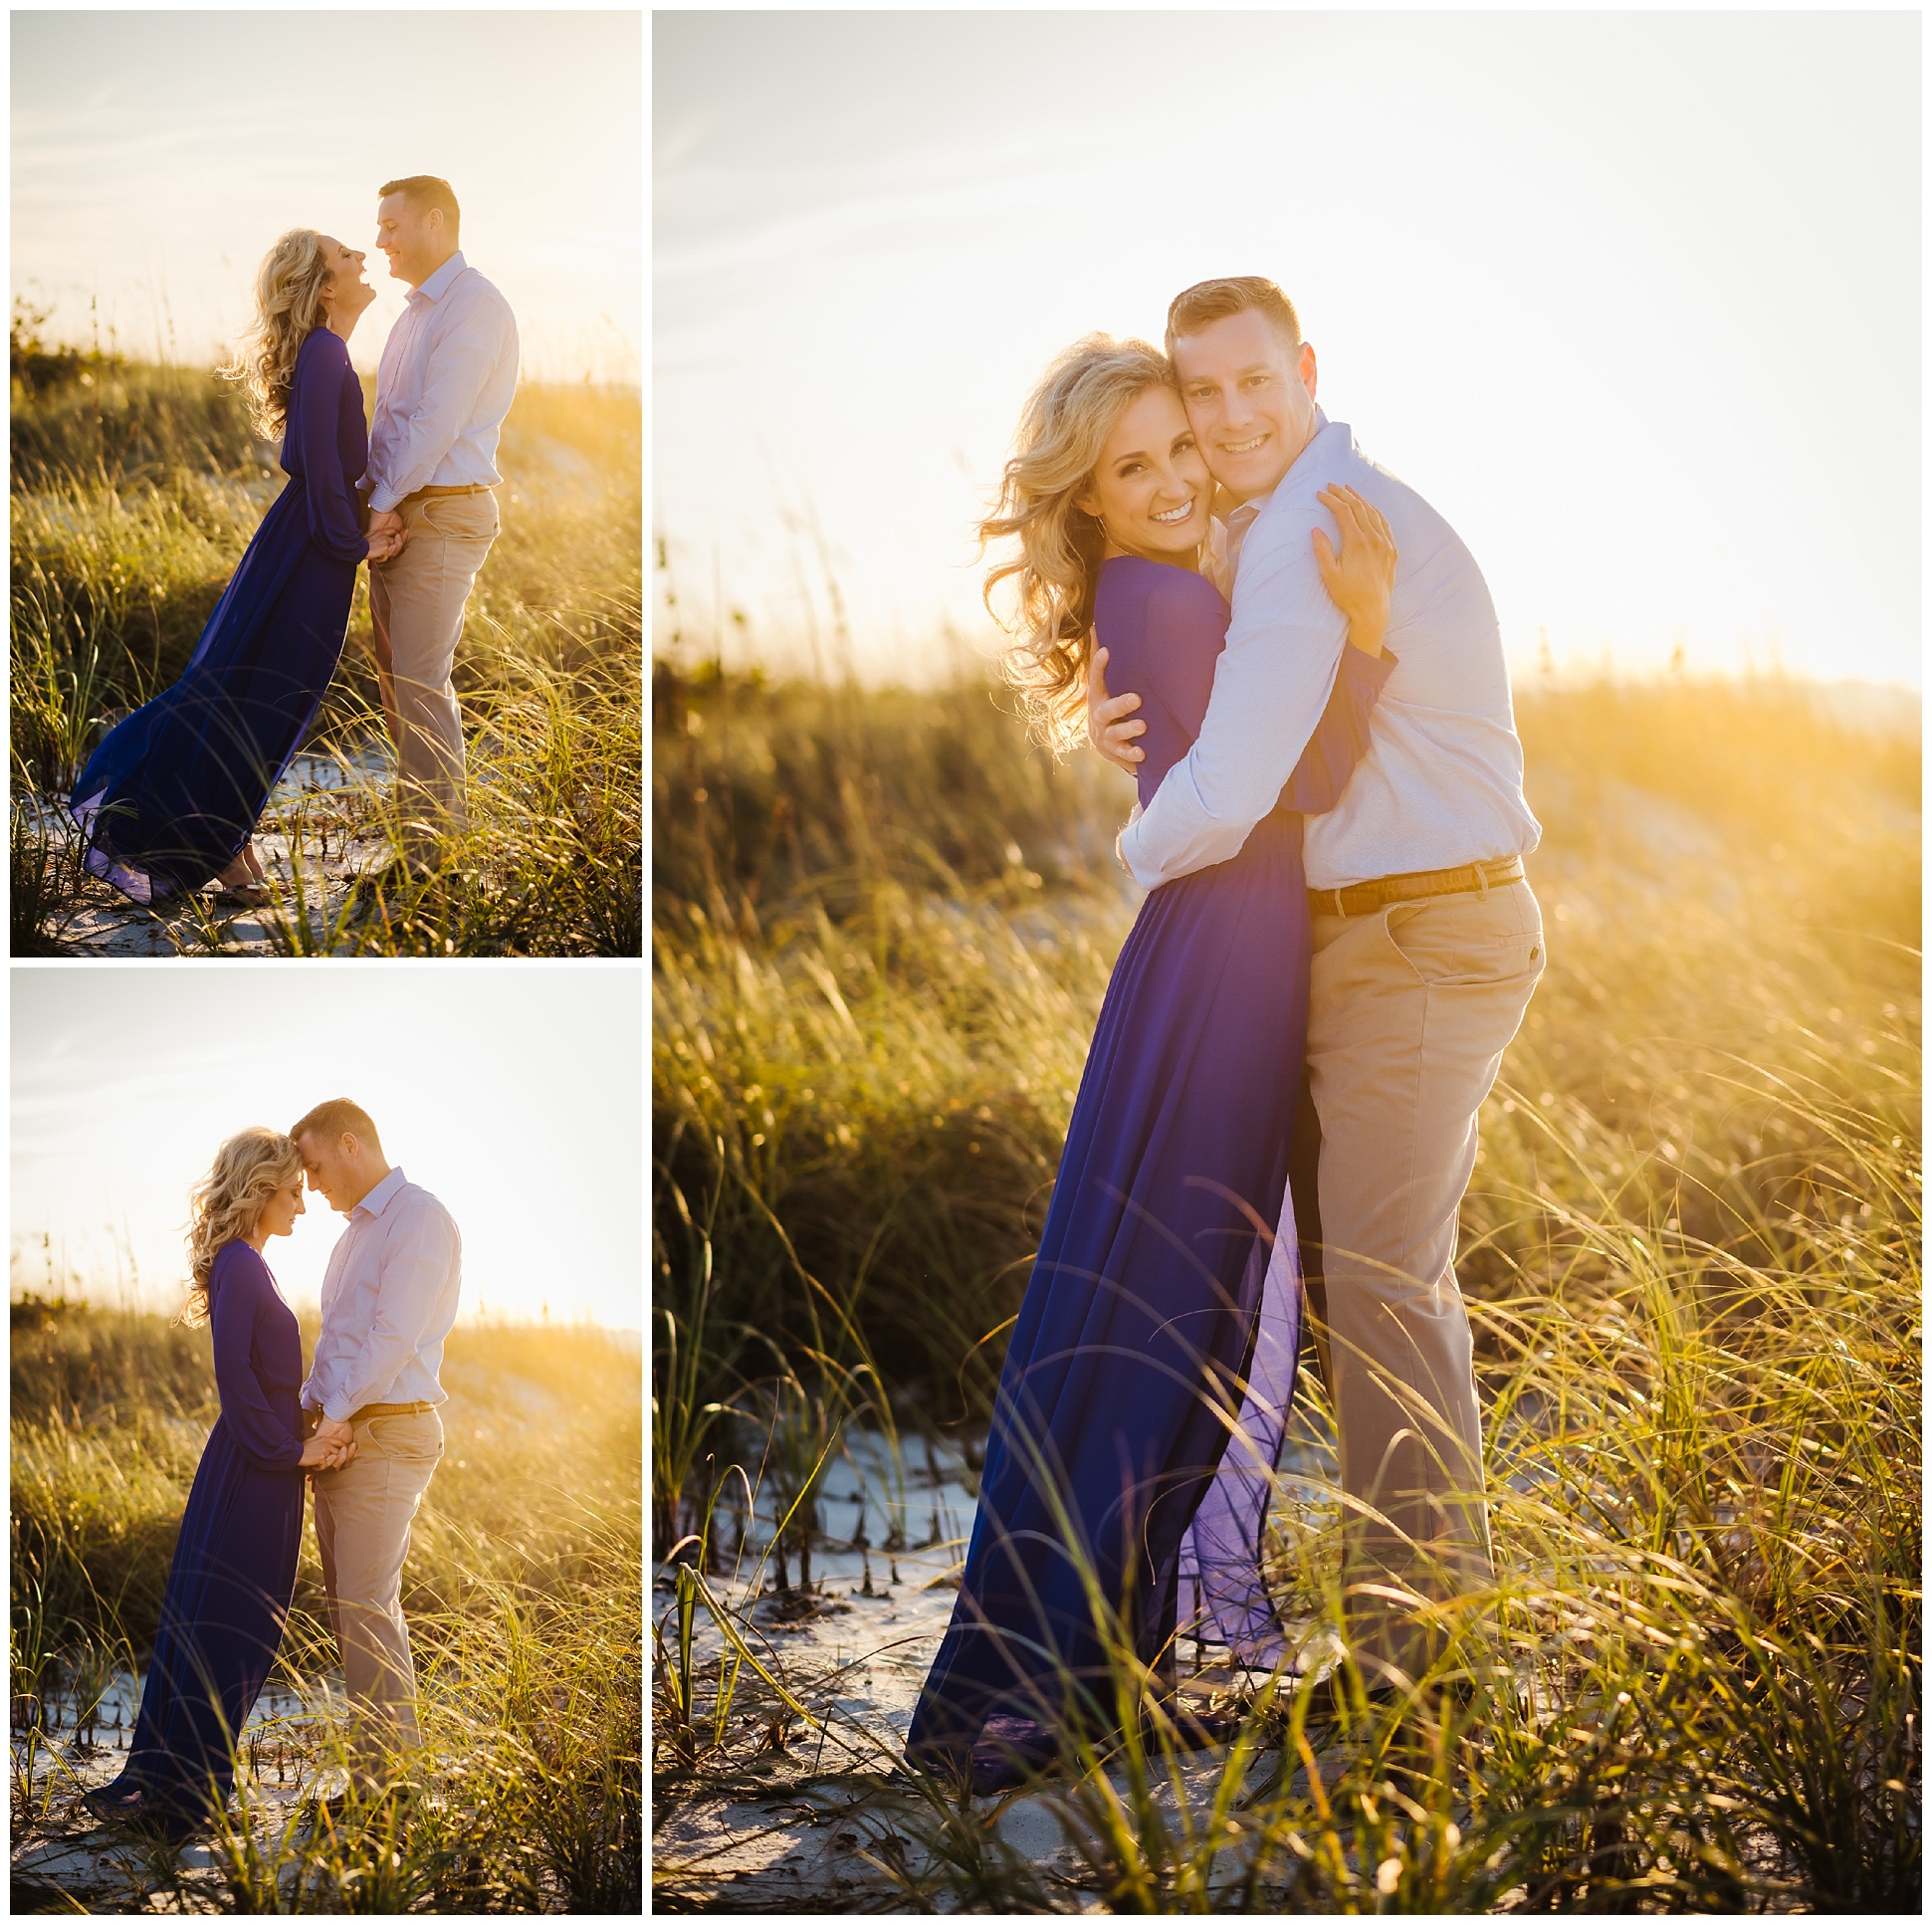 tampa-engagement-photographer-fort-desoto-ruins-sunset-sophisticated_0019.jpg